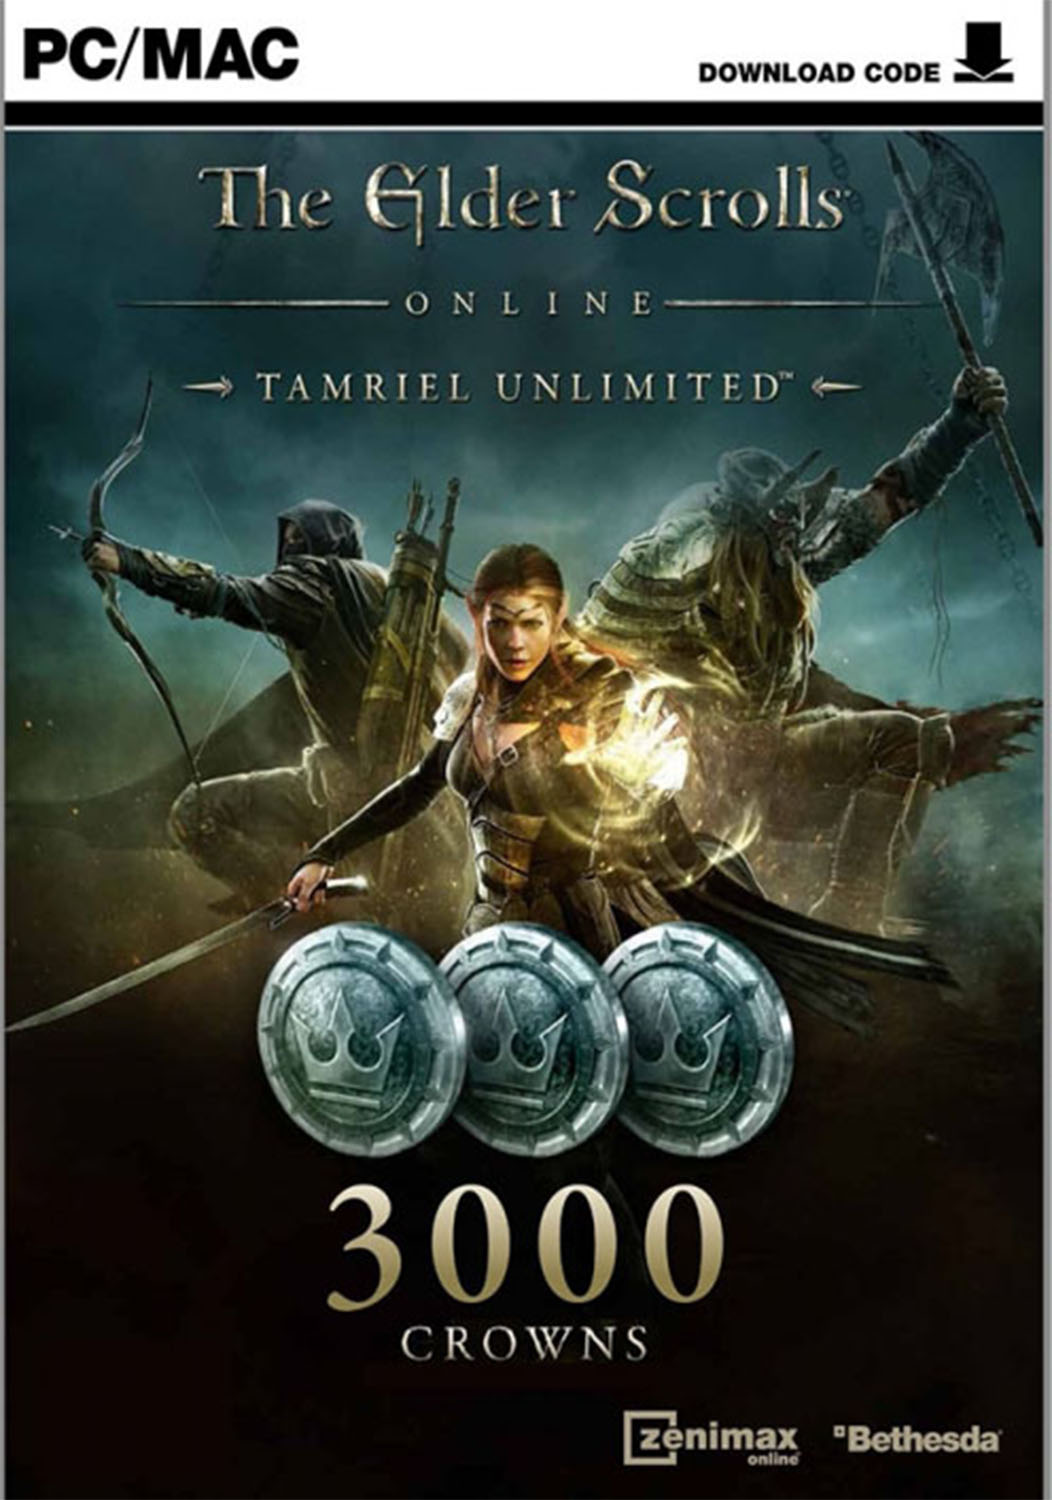 Official The Elder Scrolls Online Tamriel Unlimited 3000 Crown Pack (PC/MAC)